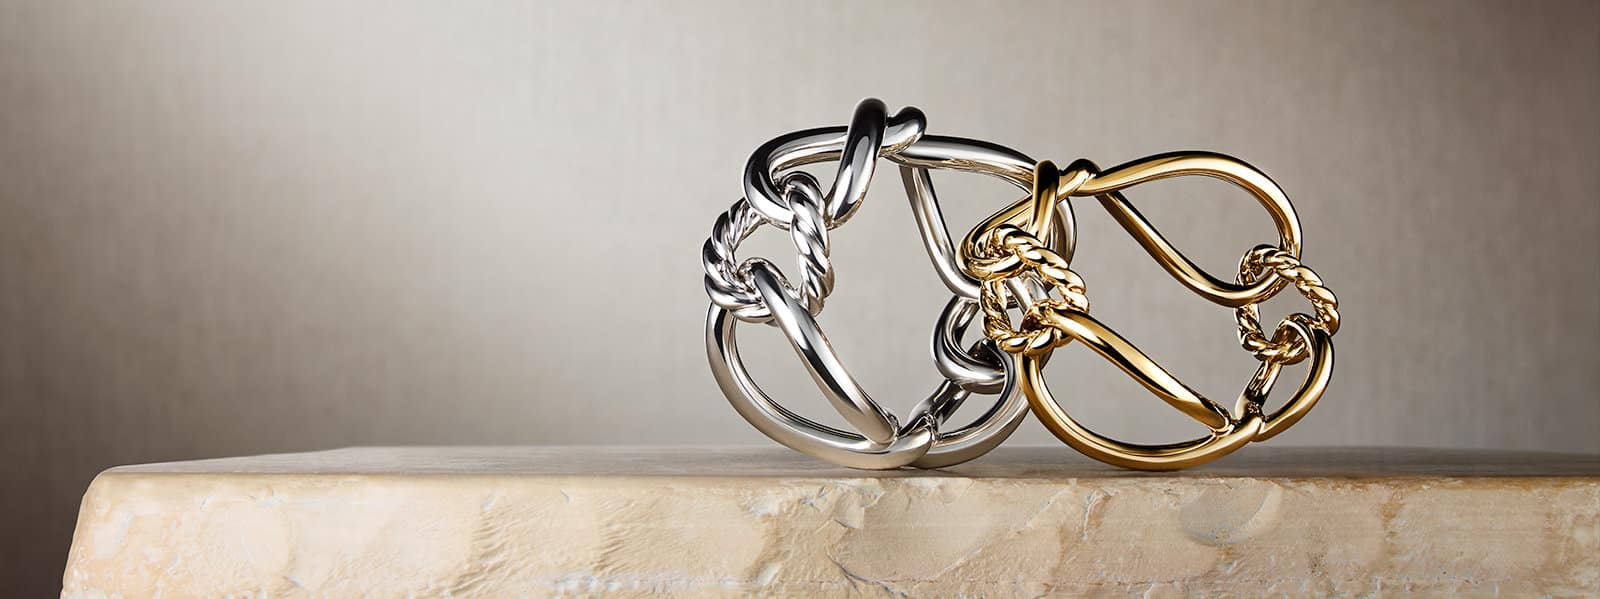 Continuance® bracelets in sterling silver and 18K yellow gold on a stone.